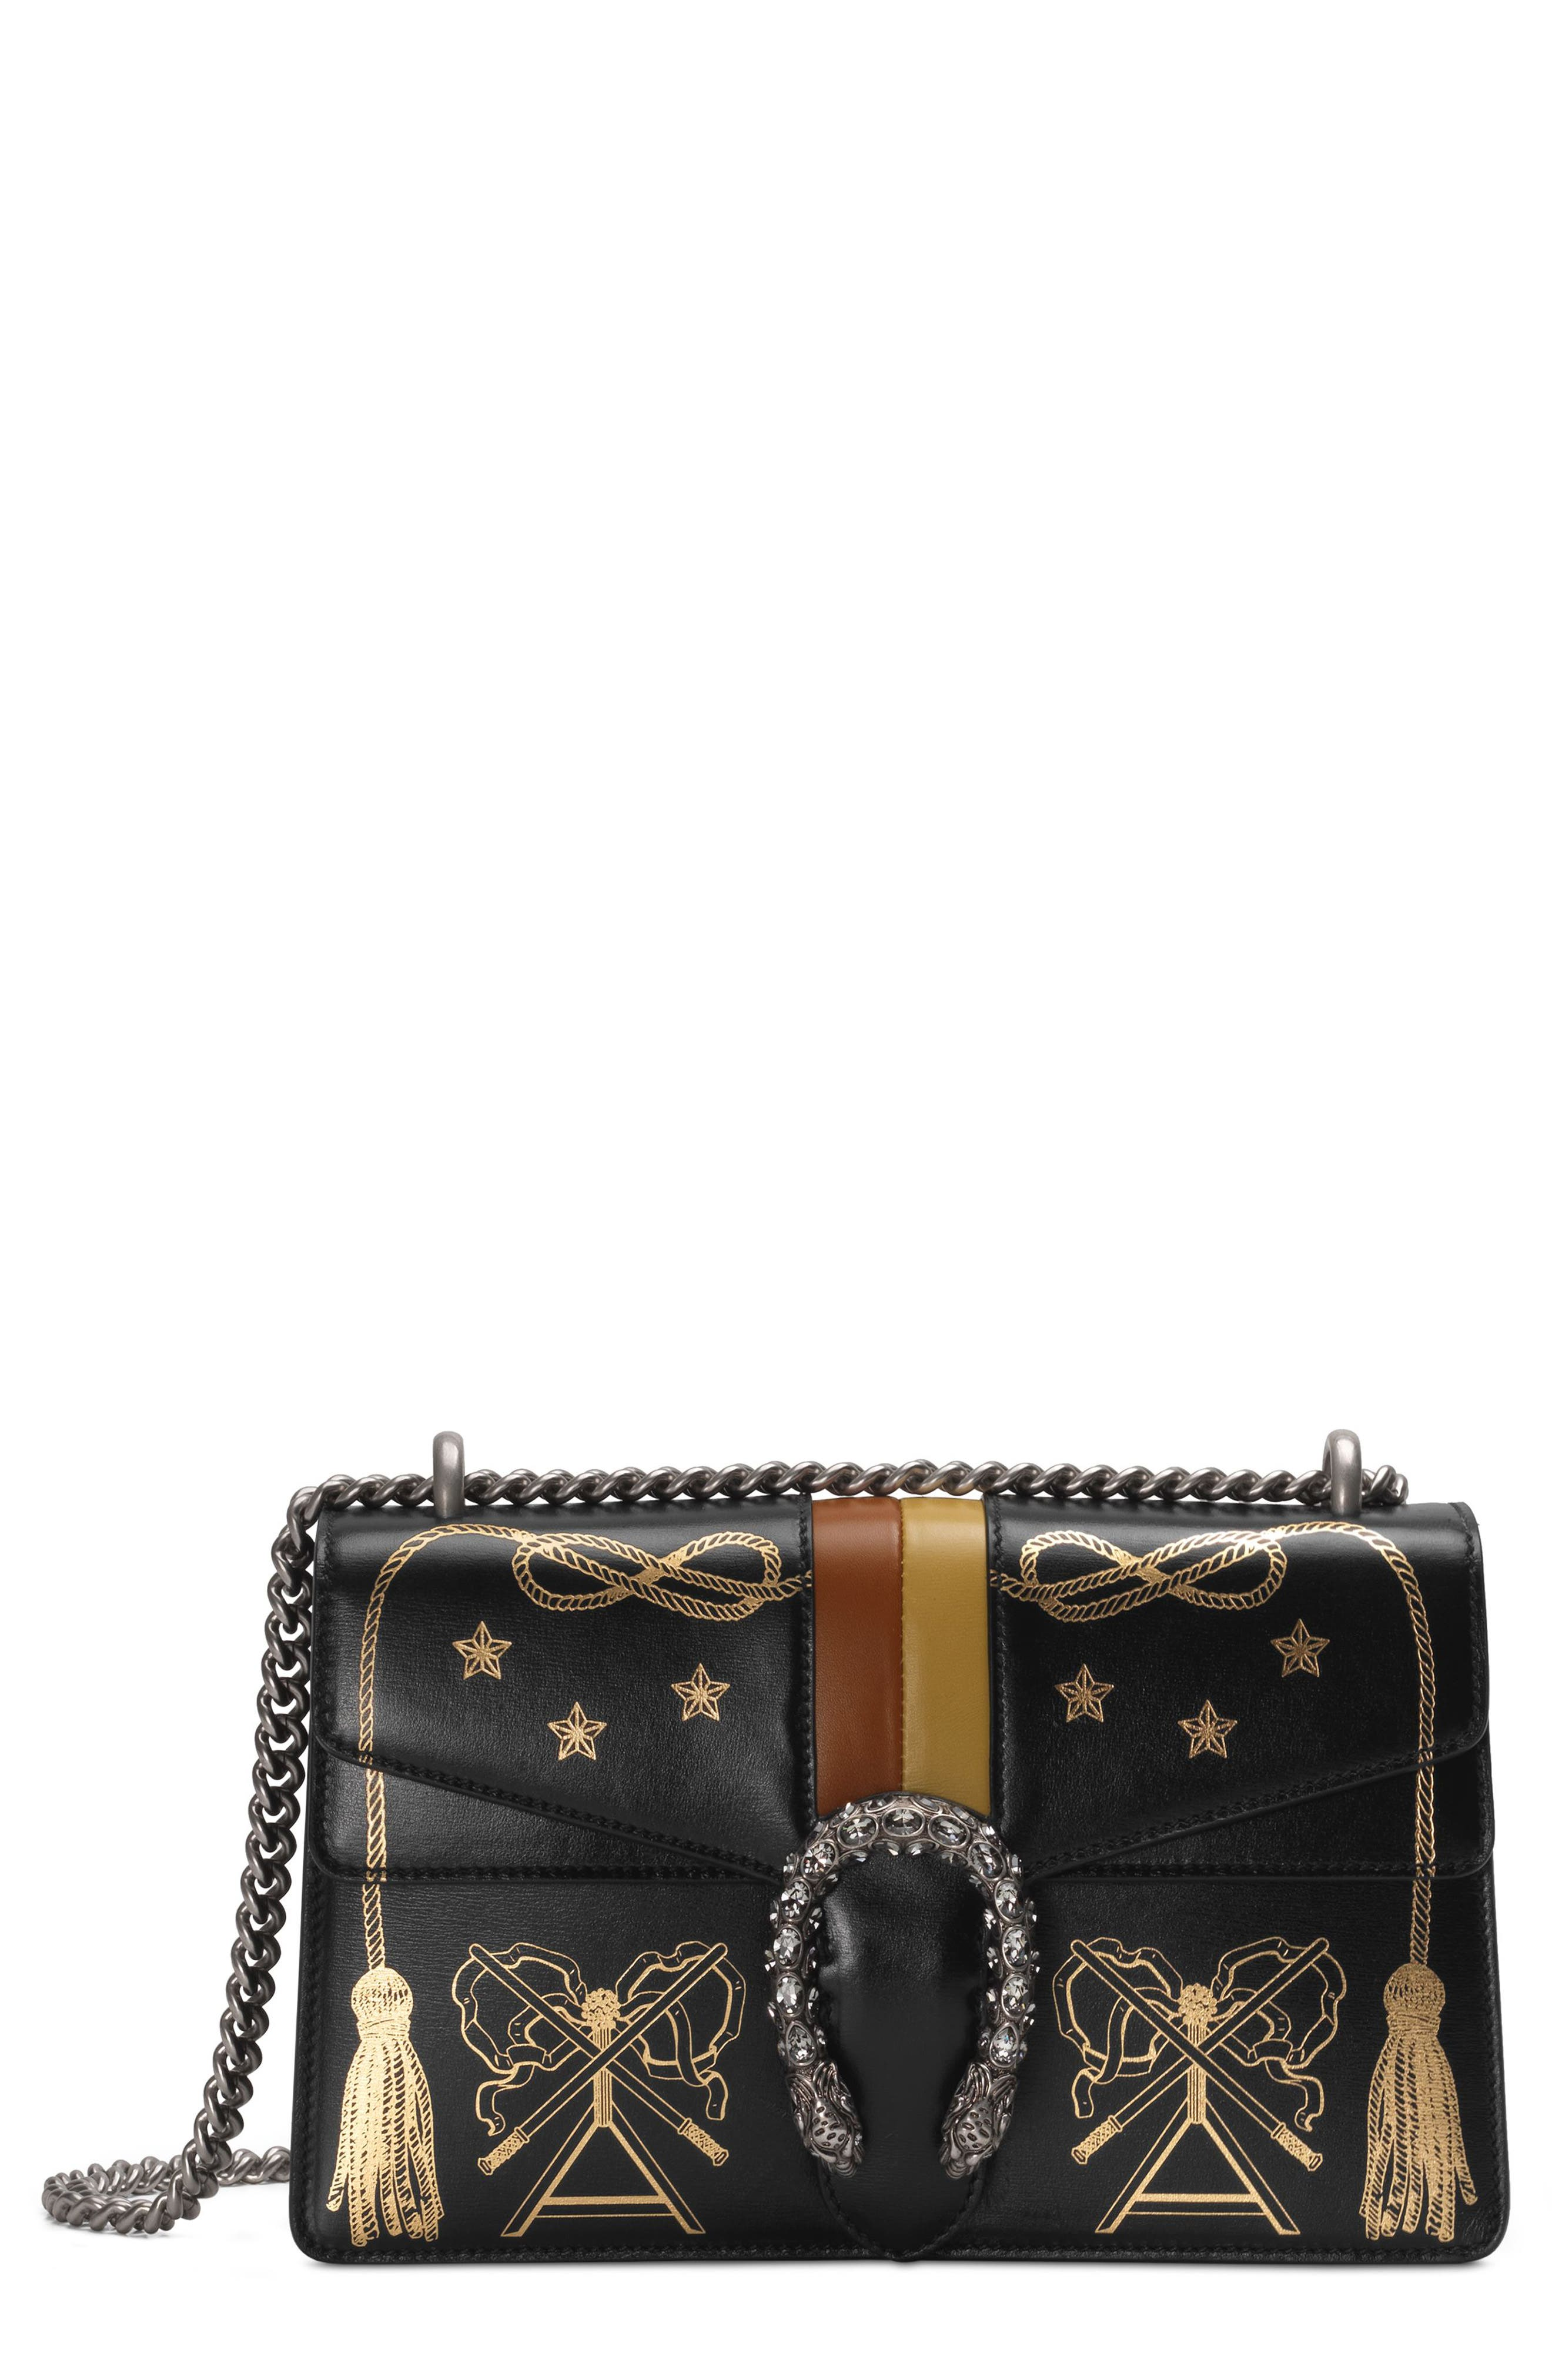 Small Dionysus Leather Shoulder Bag,                             Main thumbnail 1, color,                             BLACK GOLD/ CARAMEL/ OCHRE